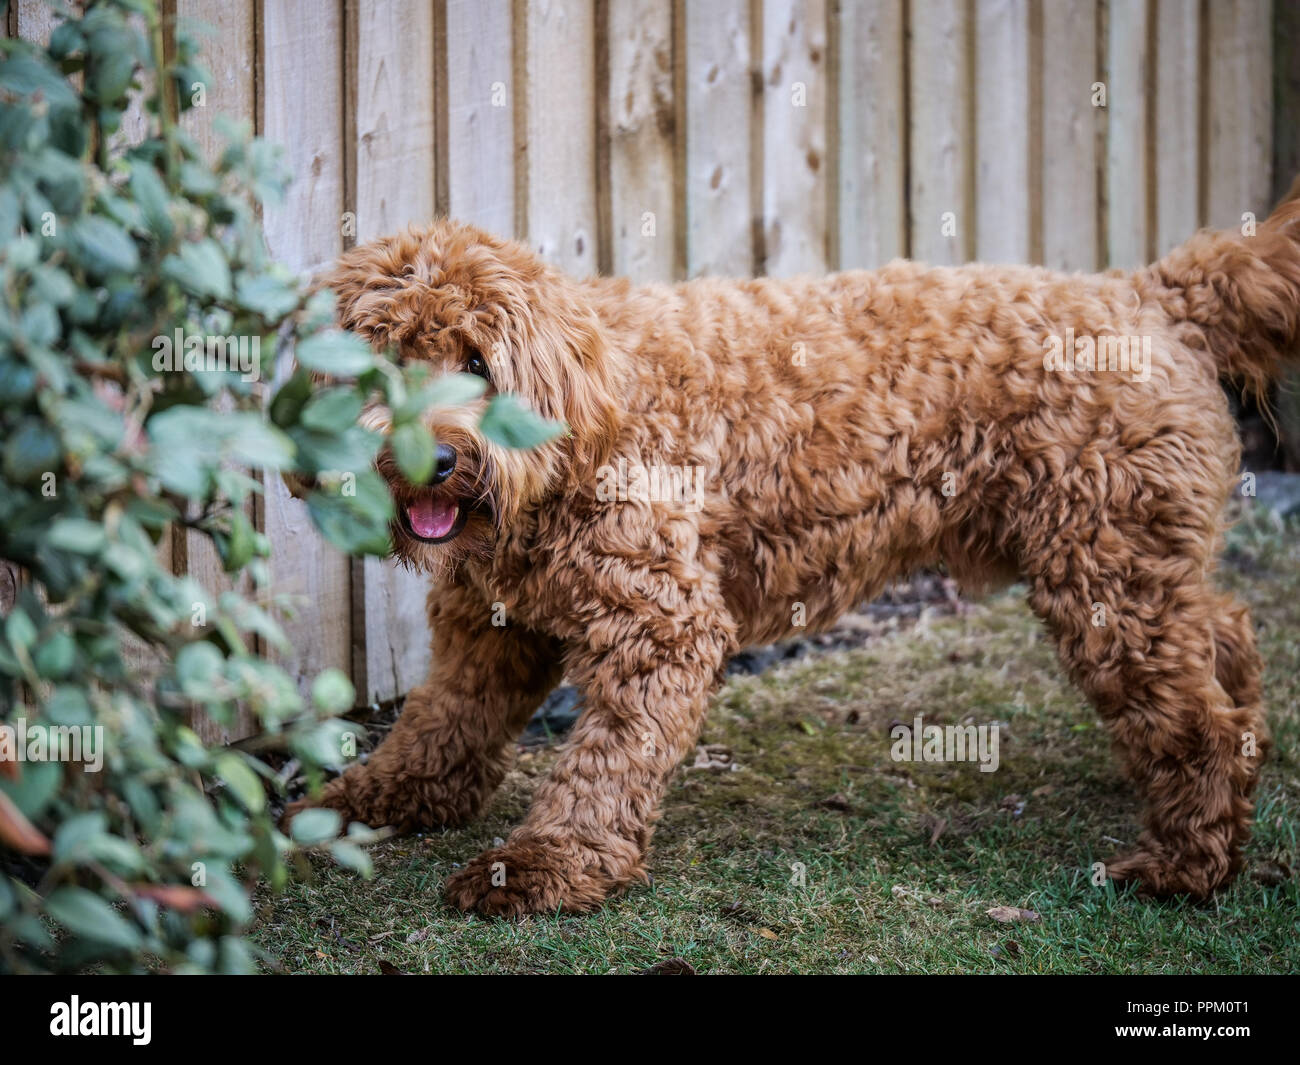 Red haired Cockapoo dog at play in a garden setting - Stock Image